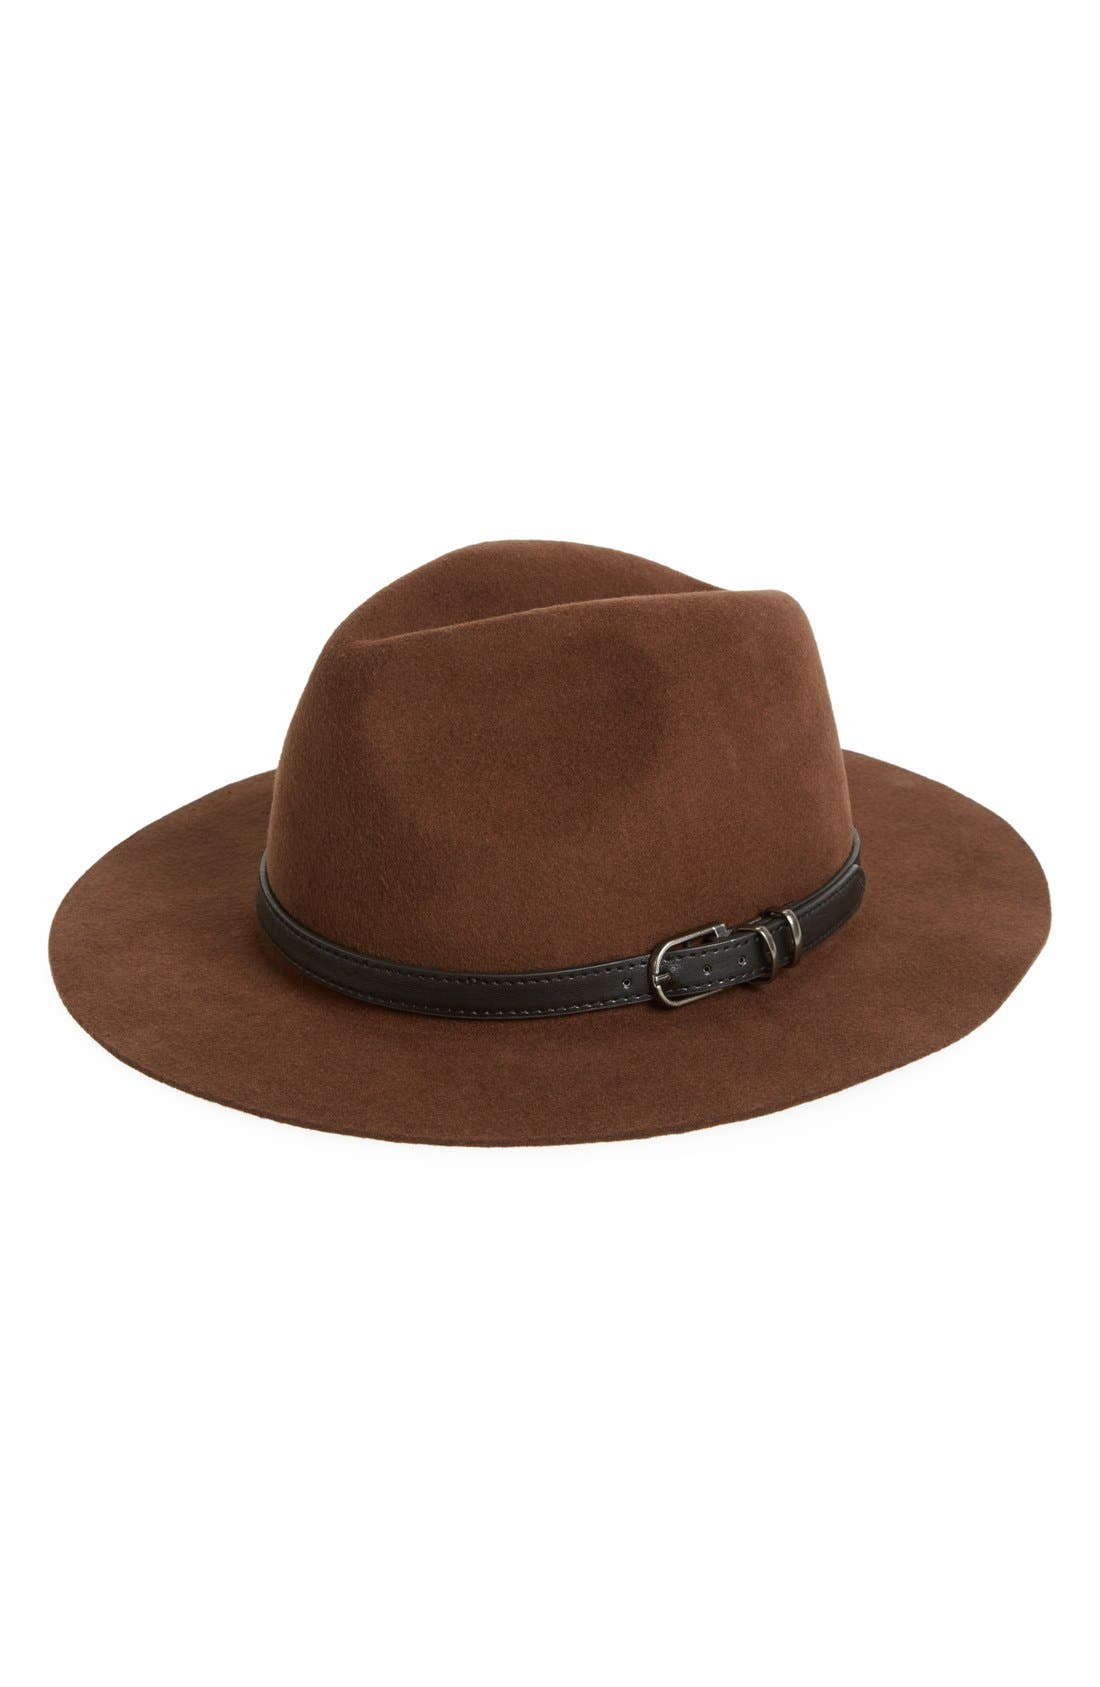 Alternate Image 1 Selected - Sole Society Wool Outback Hat